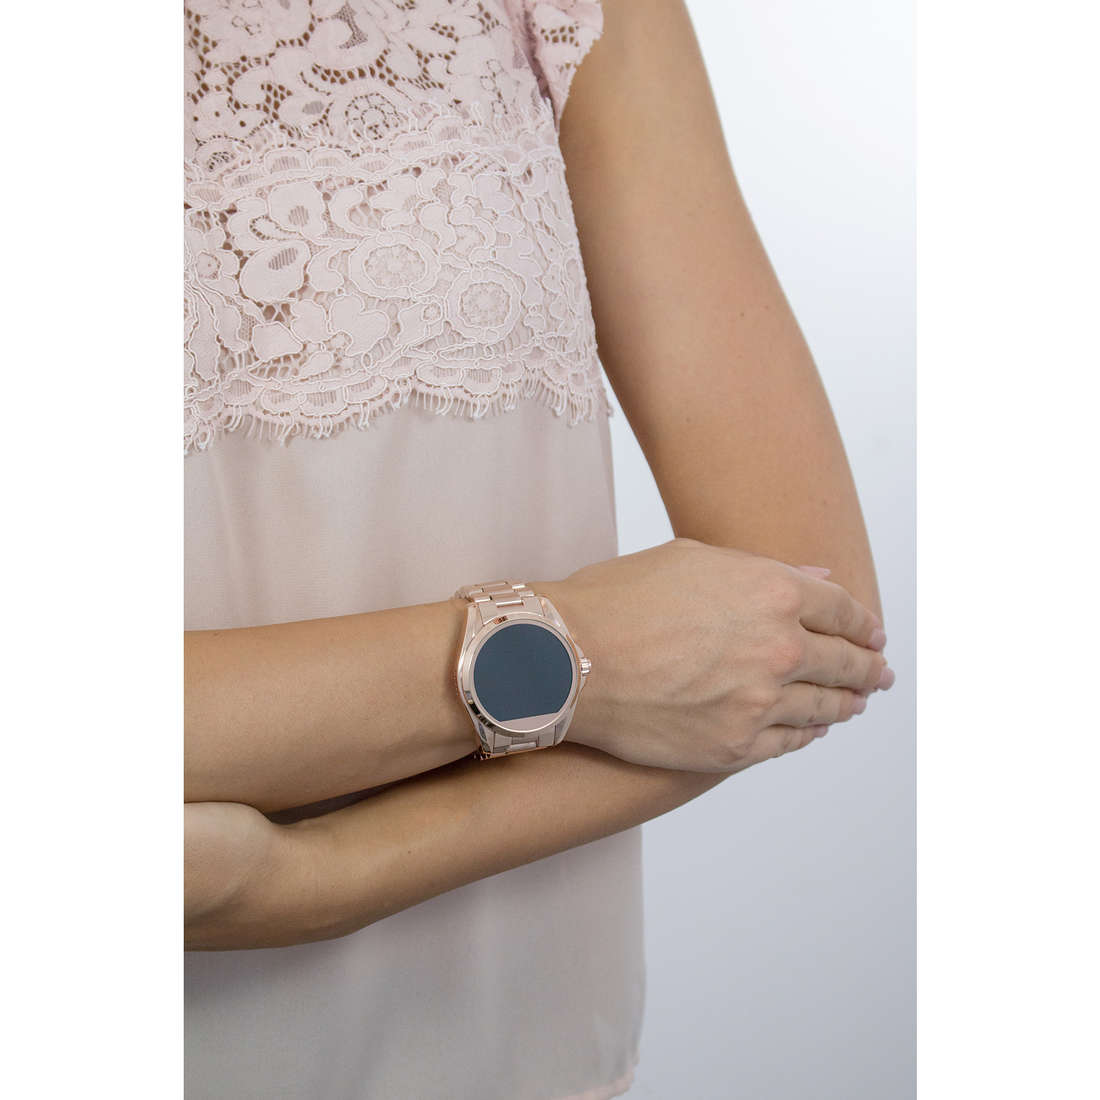 Michael Kors Smartwatches femme MKT5004 photo wearing